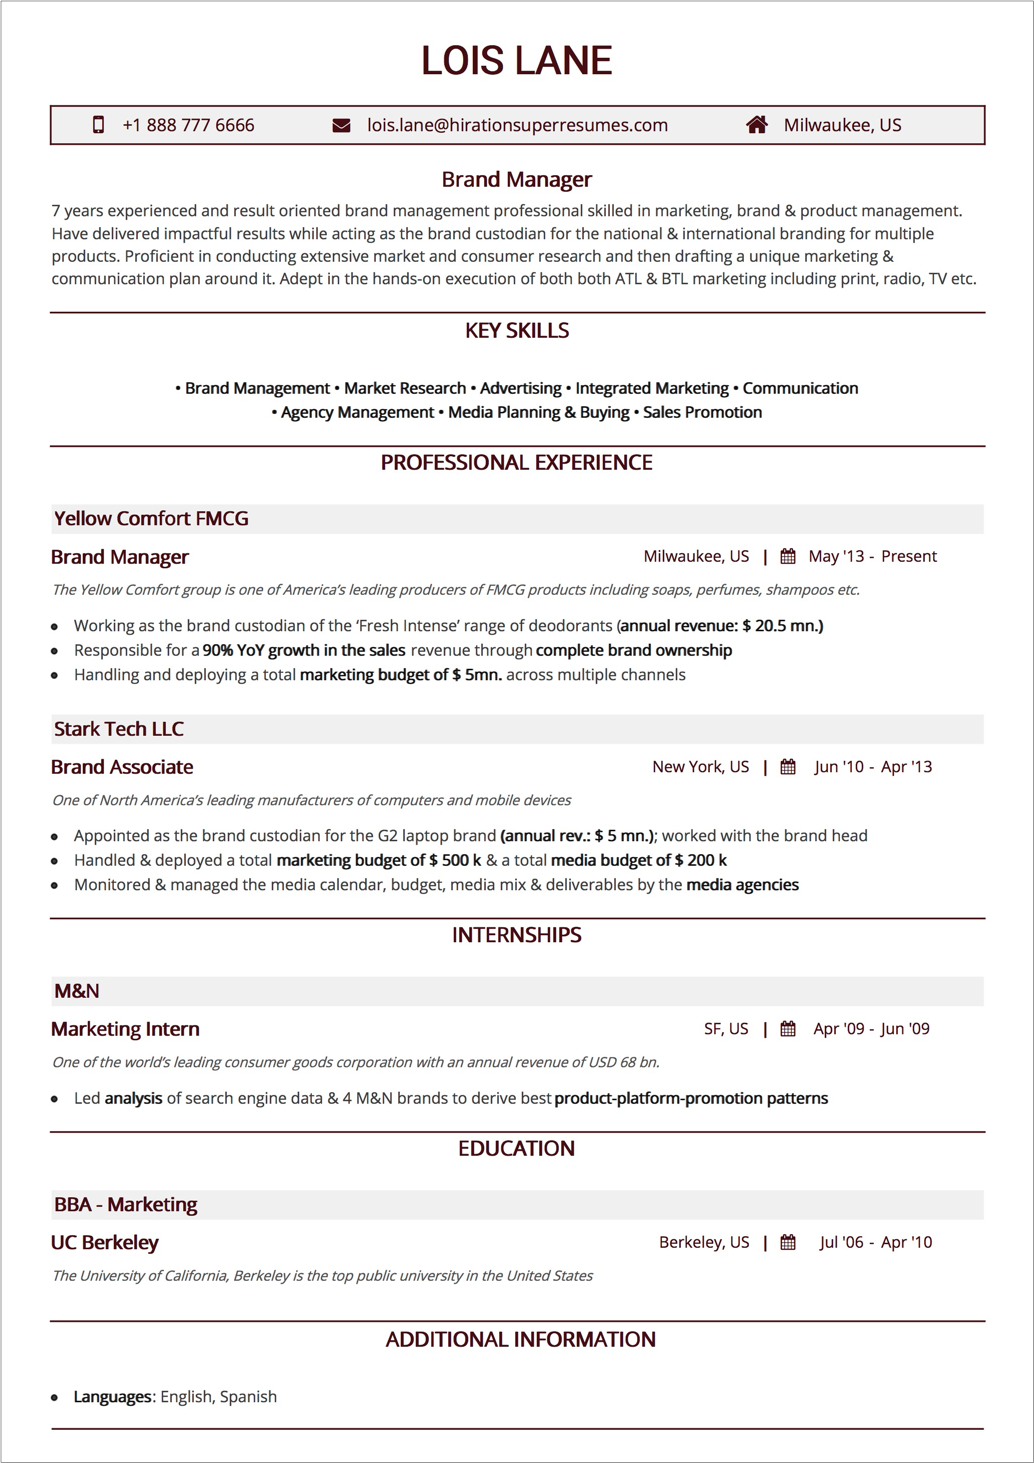 Best Resume Layout: 2018 Guide with +50 Examples and Samples